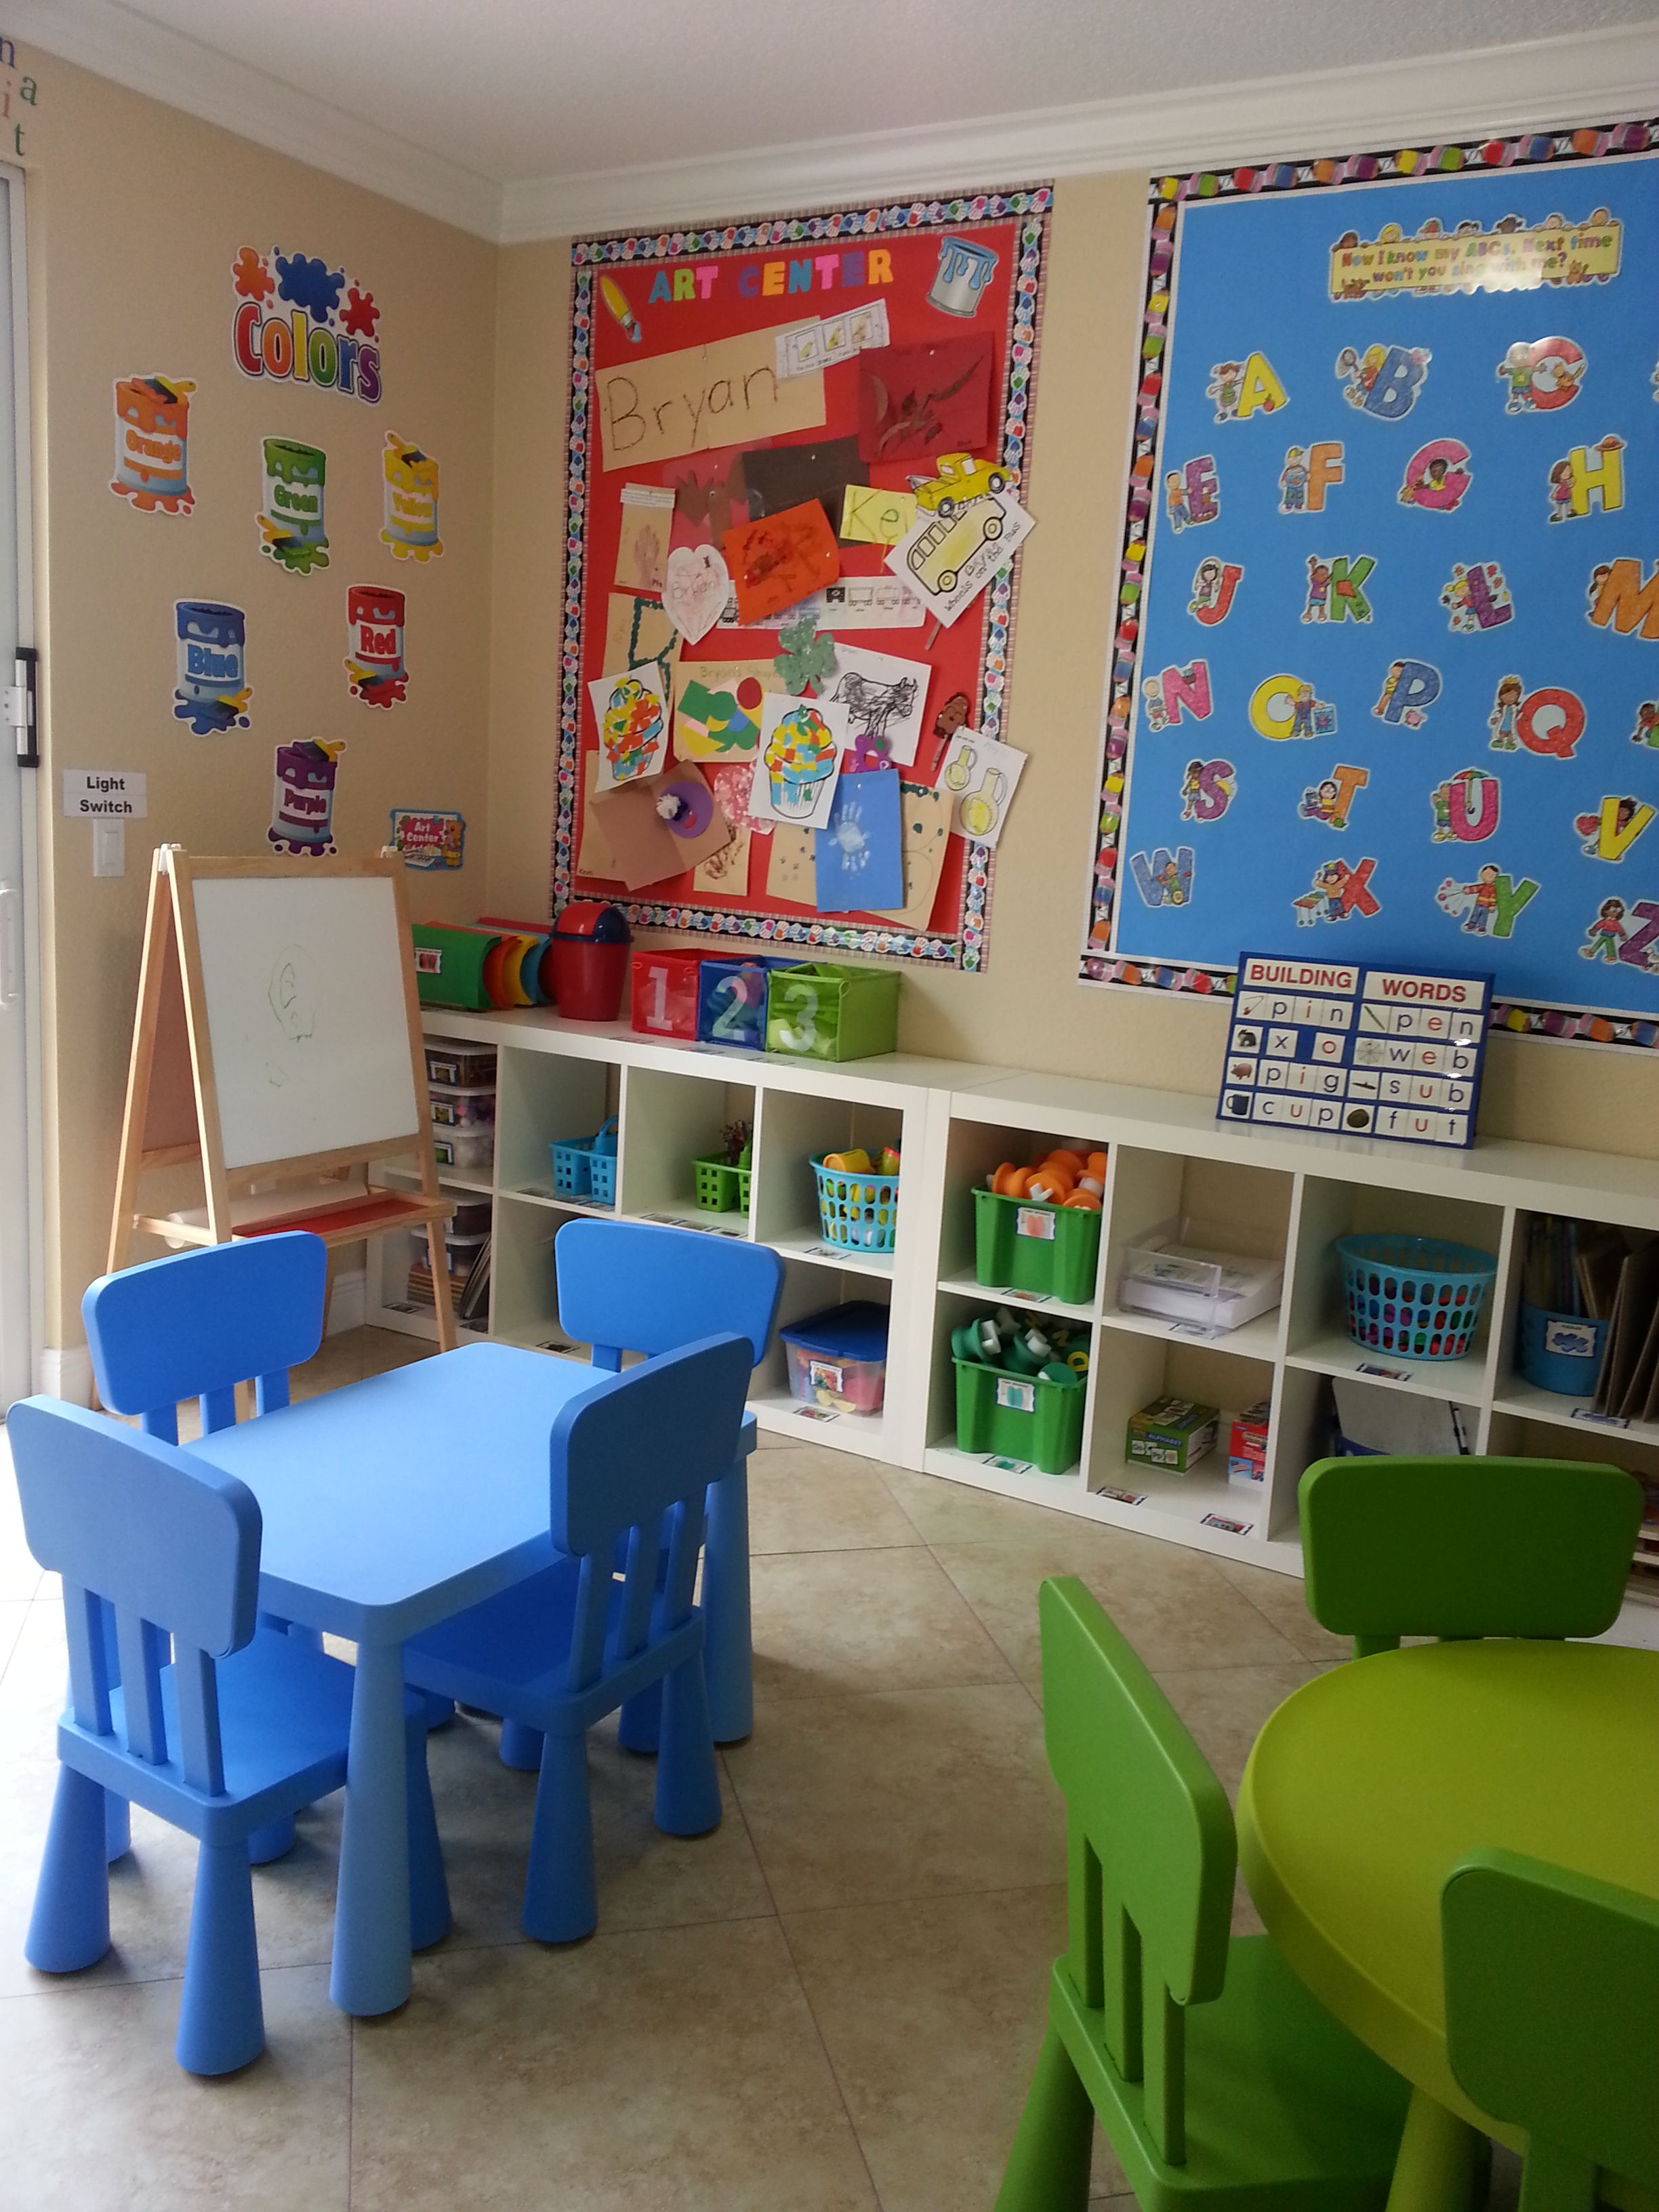 Two Small Tables Home Daycare Ideas The Kids Place